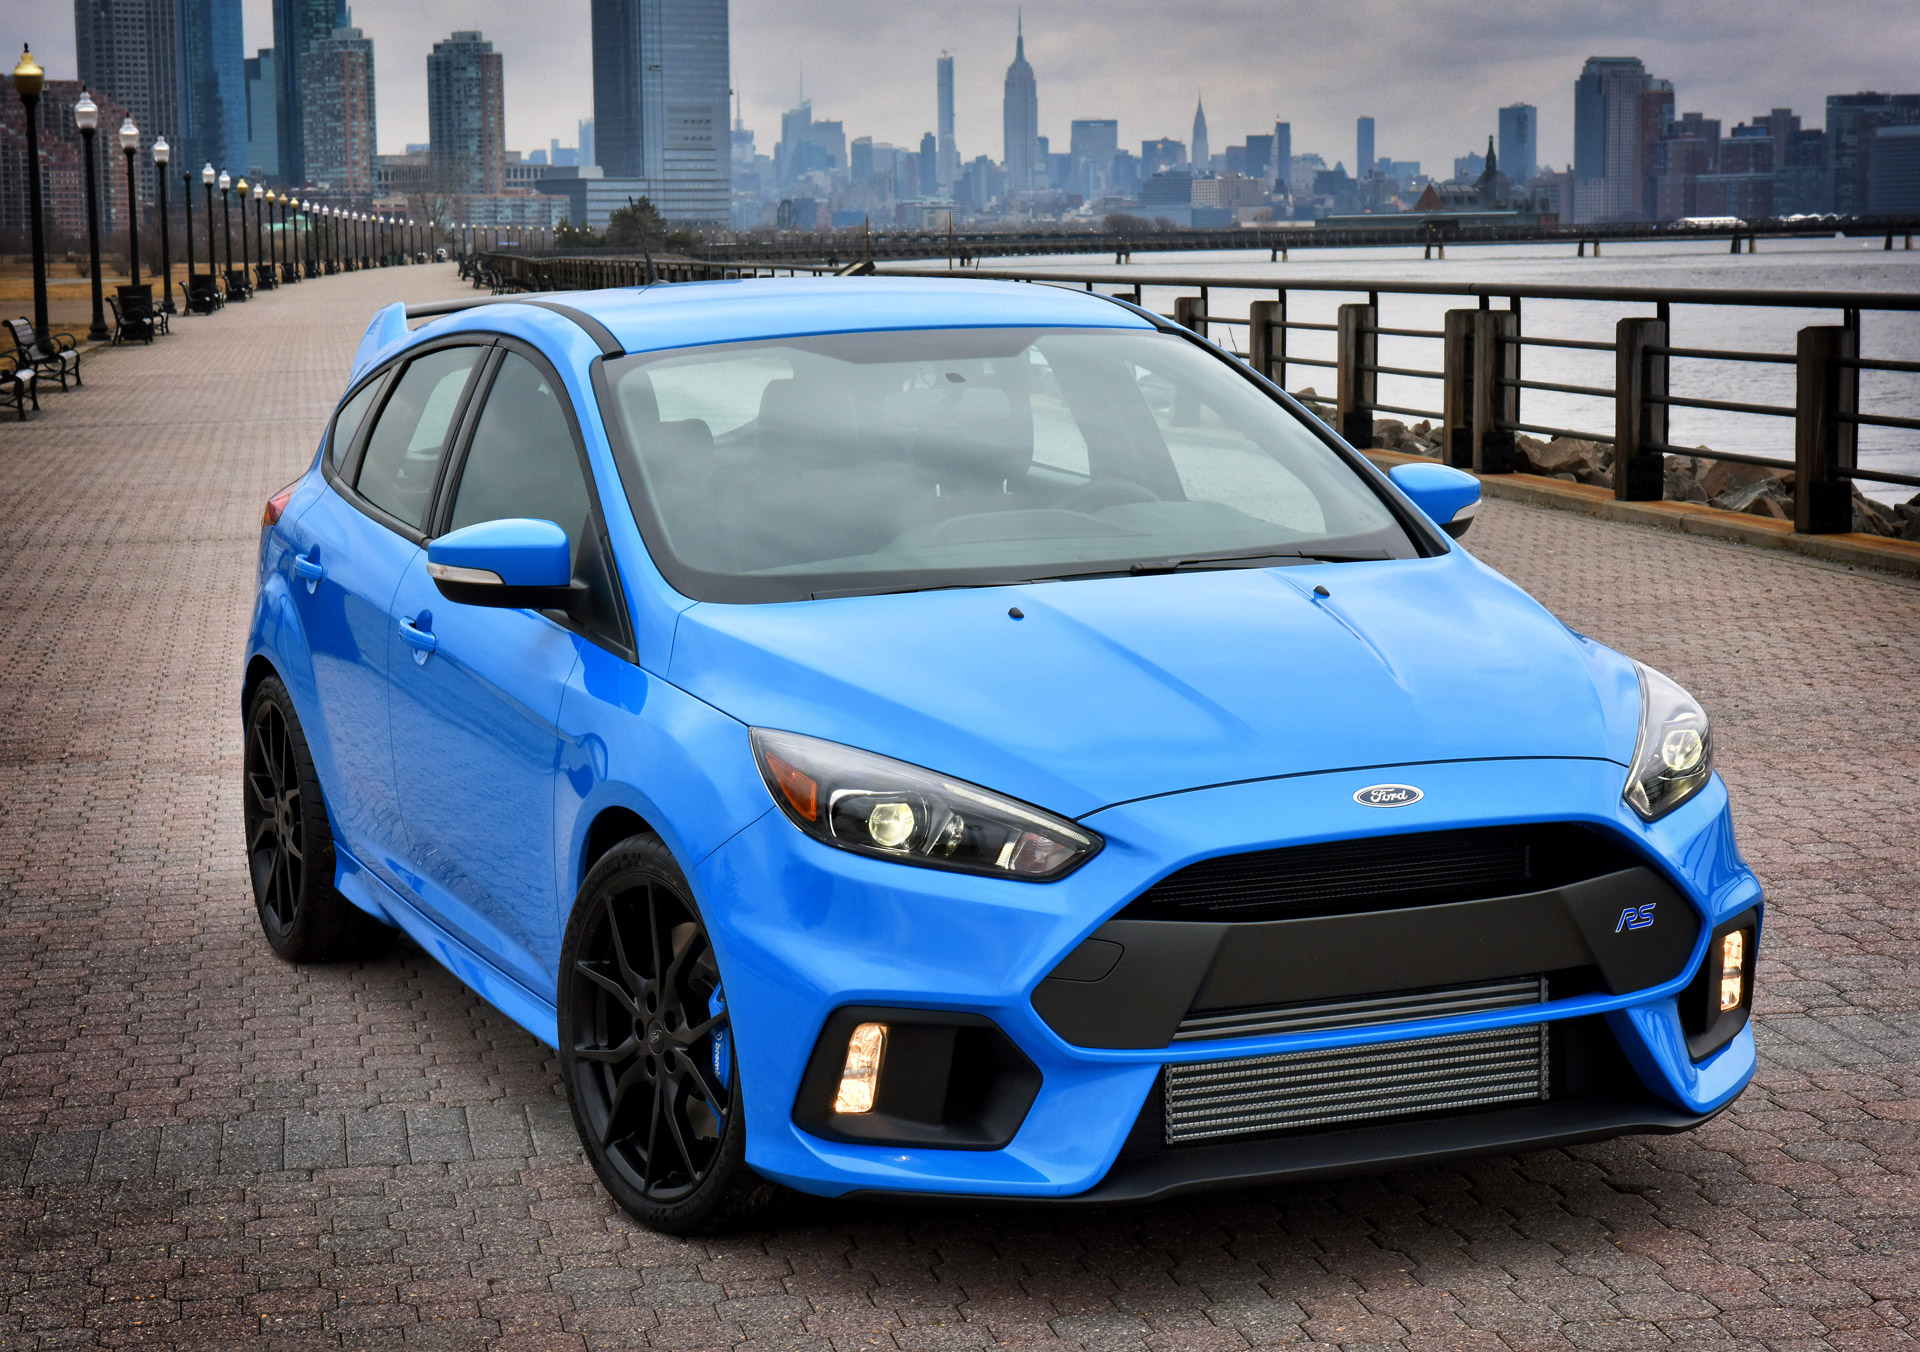 rs prices ford news revealed and focus by fordfocusrs magazine car stats price industry